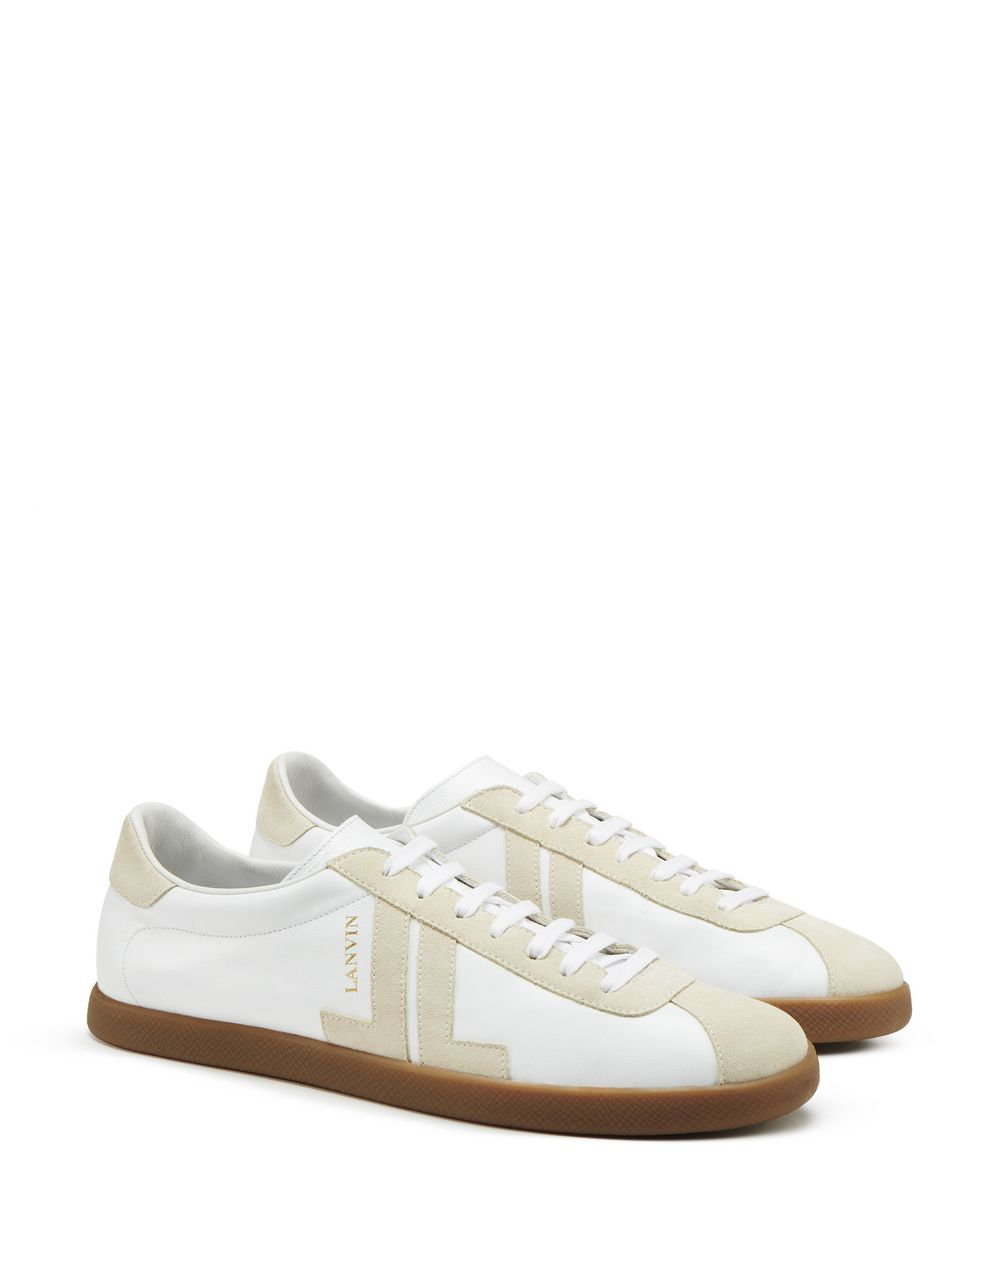 DUAL-MATERIAL JL LOW-TOP TRAINERS - Lanvin